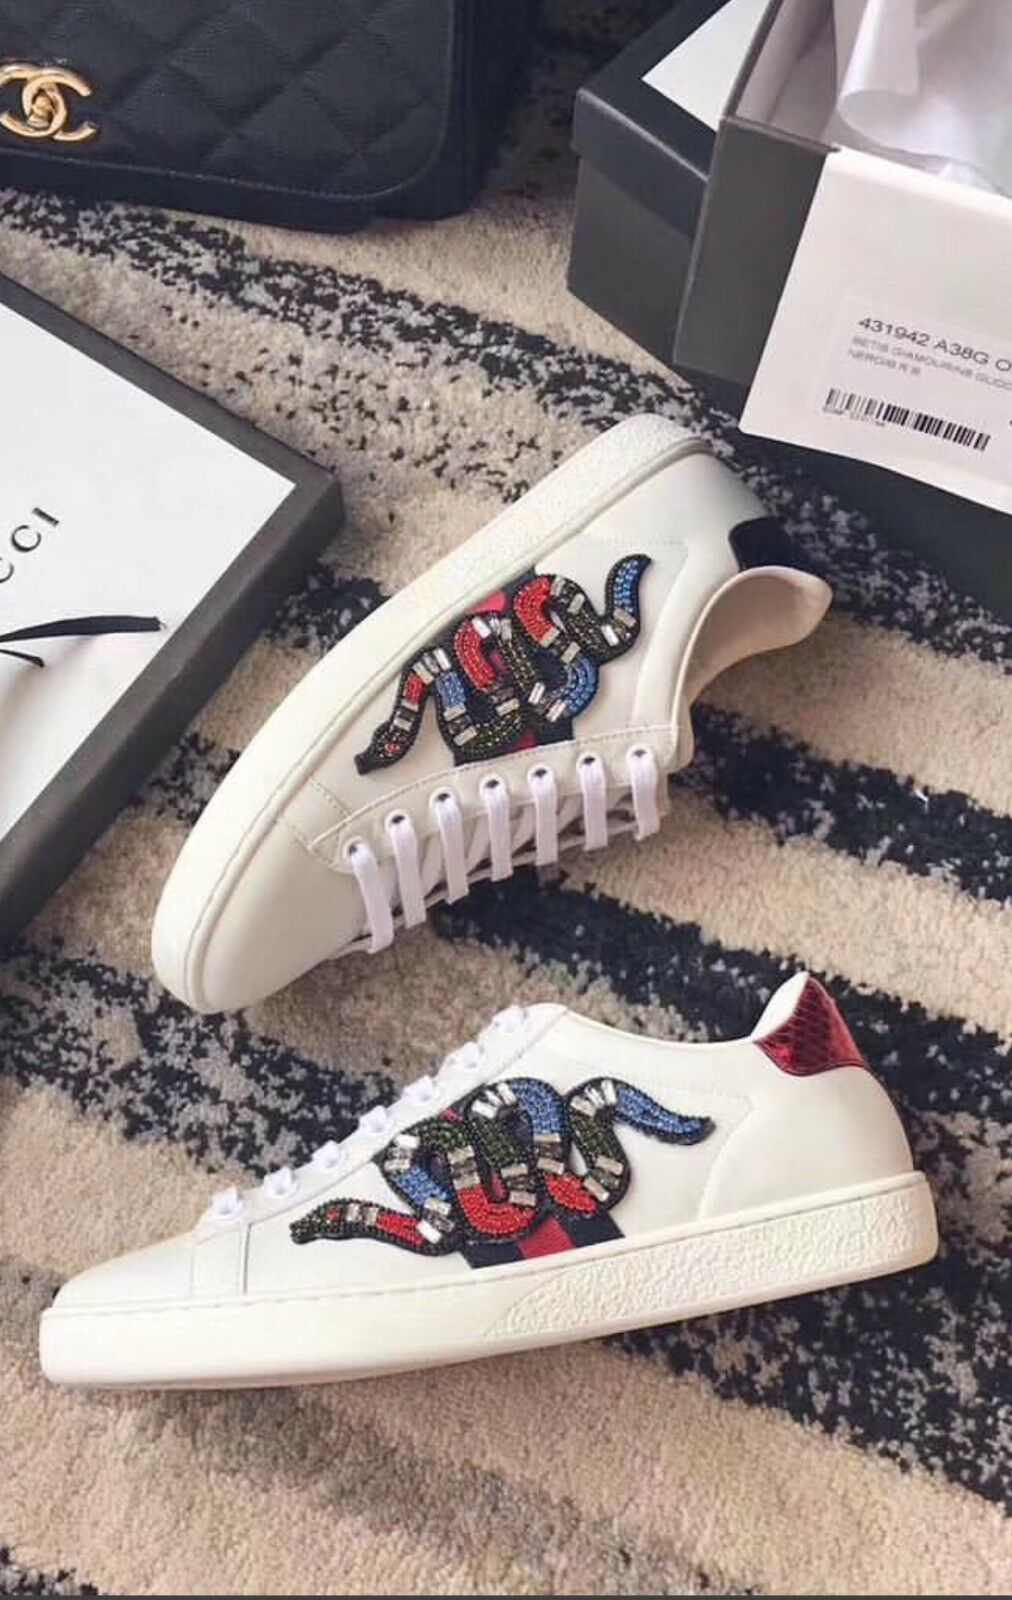 Sneakers women 7.5 stones snakes on sides